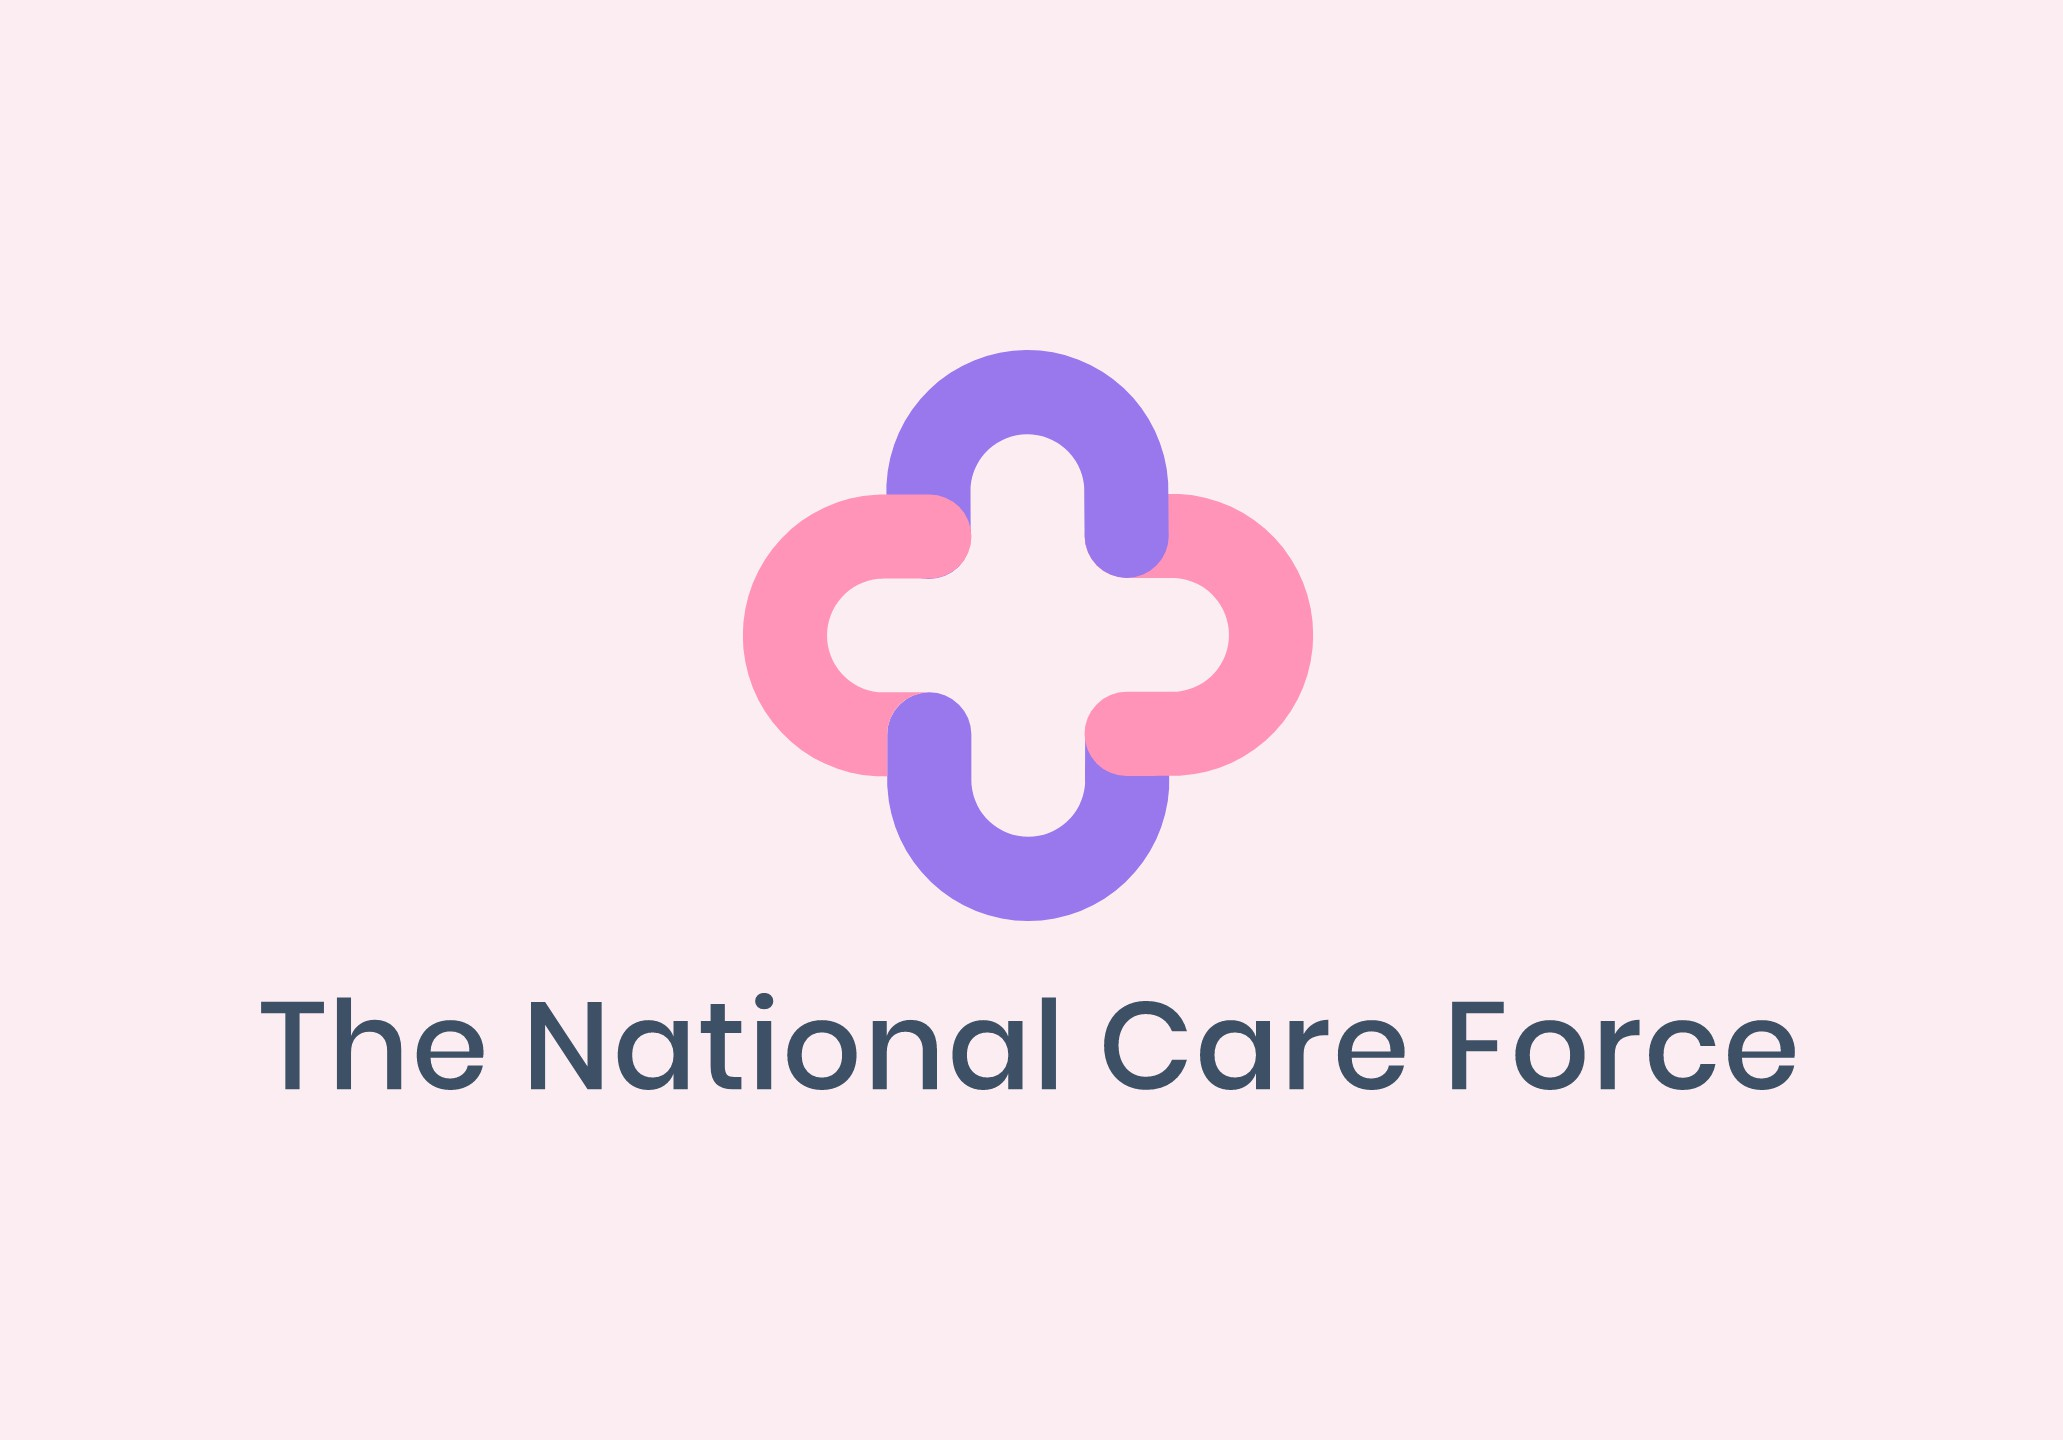 National Care Force Launched to Fill Gaps in the Workforce